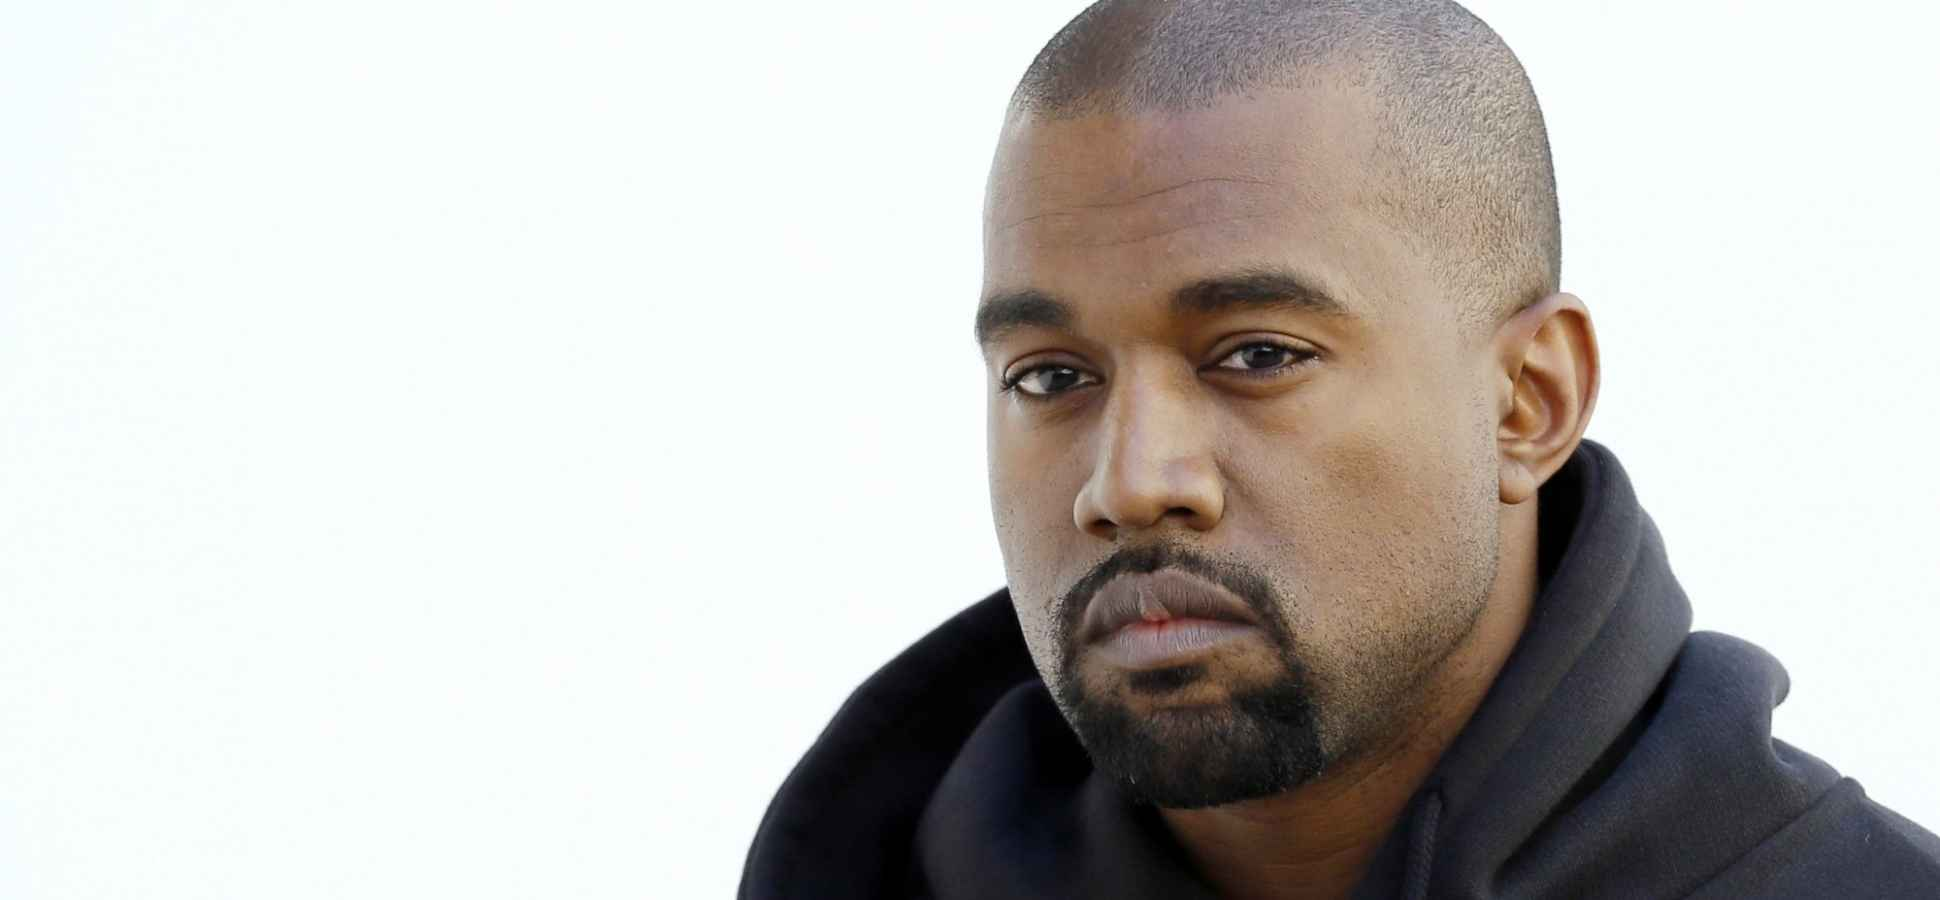 Mark Zuckerberg Has Let Down The World, Says Kanye West